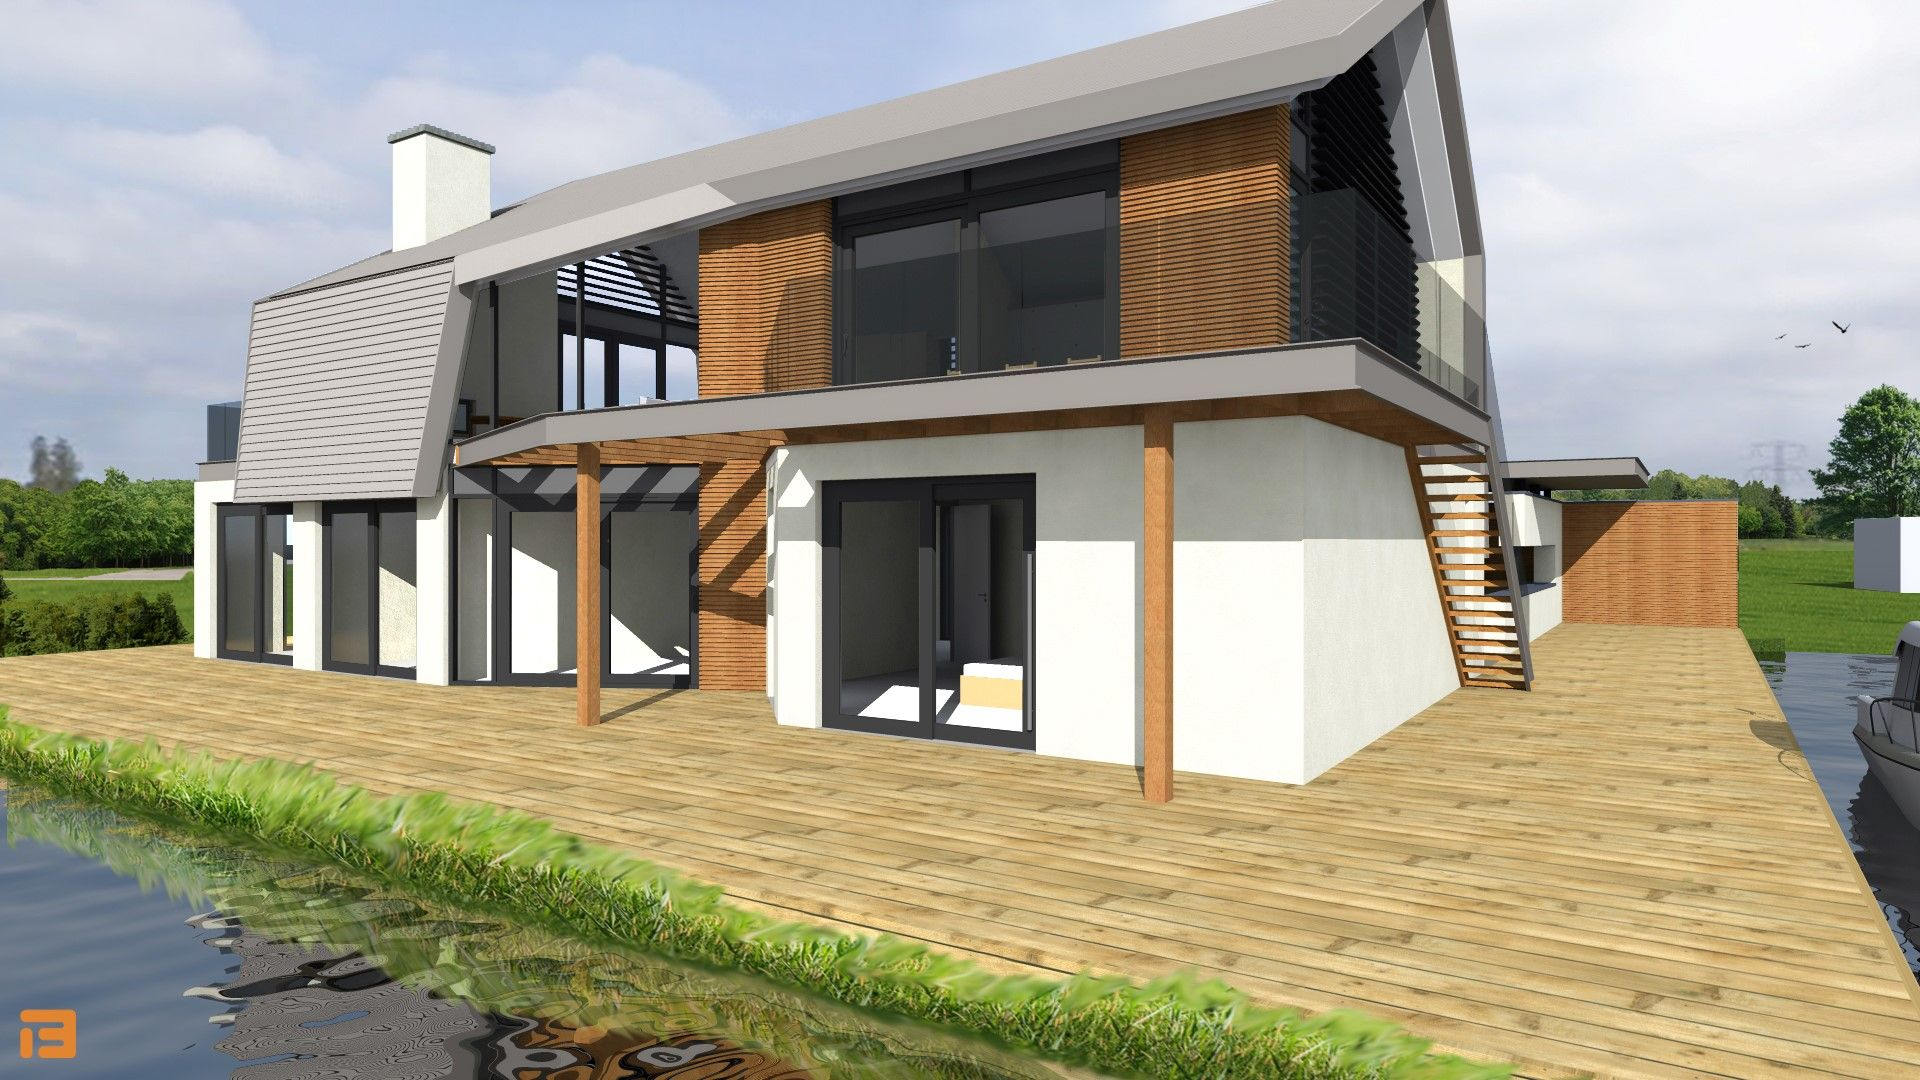 Residential project in Monster, Netherlands Modern and luxurious house desing